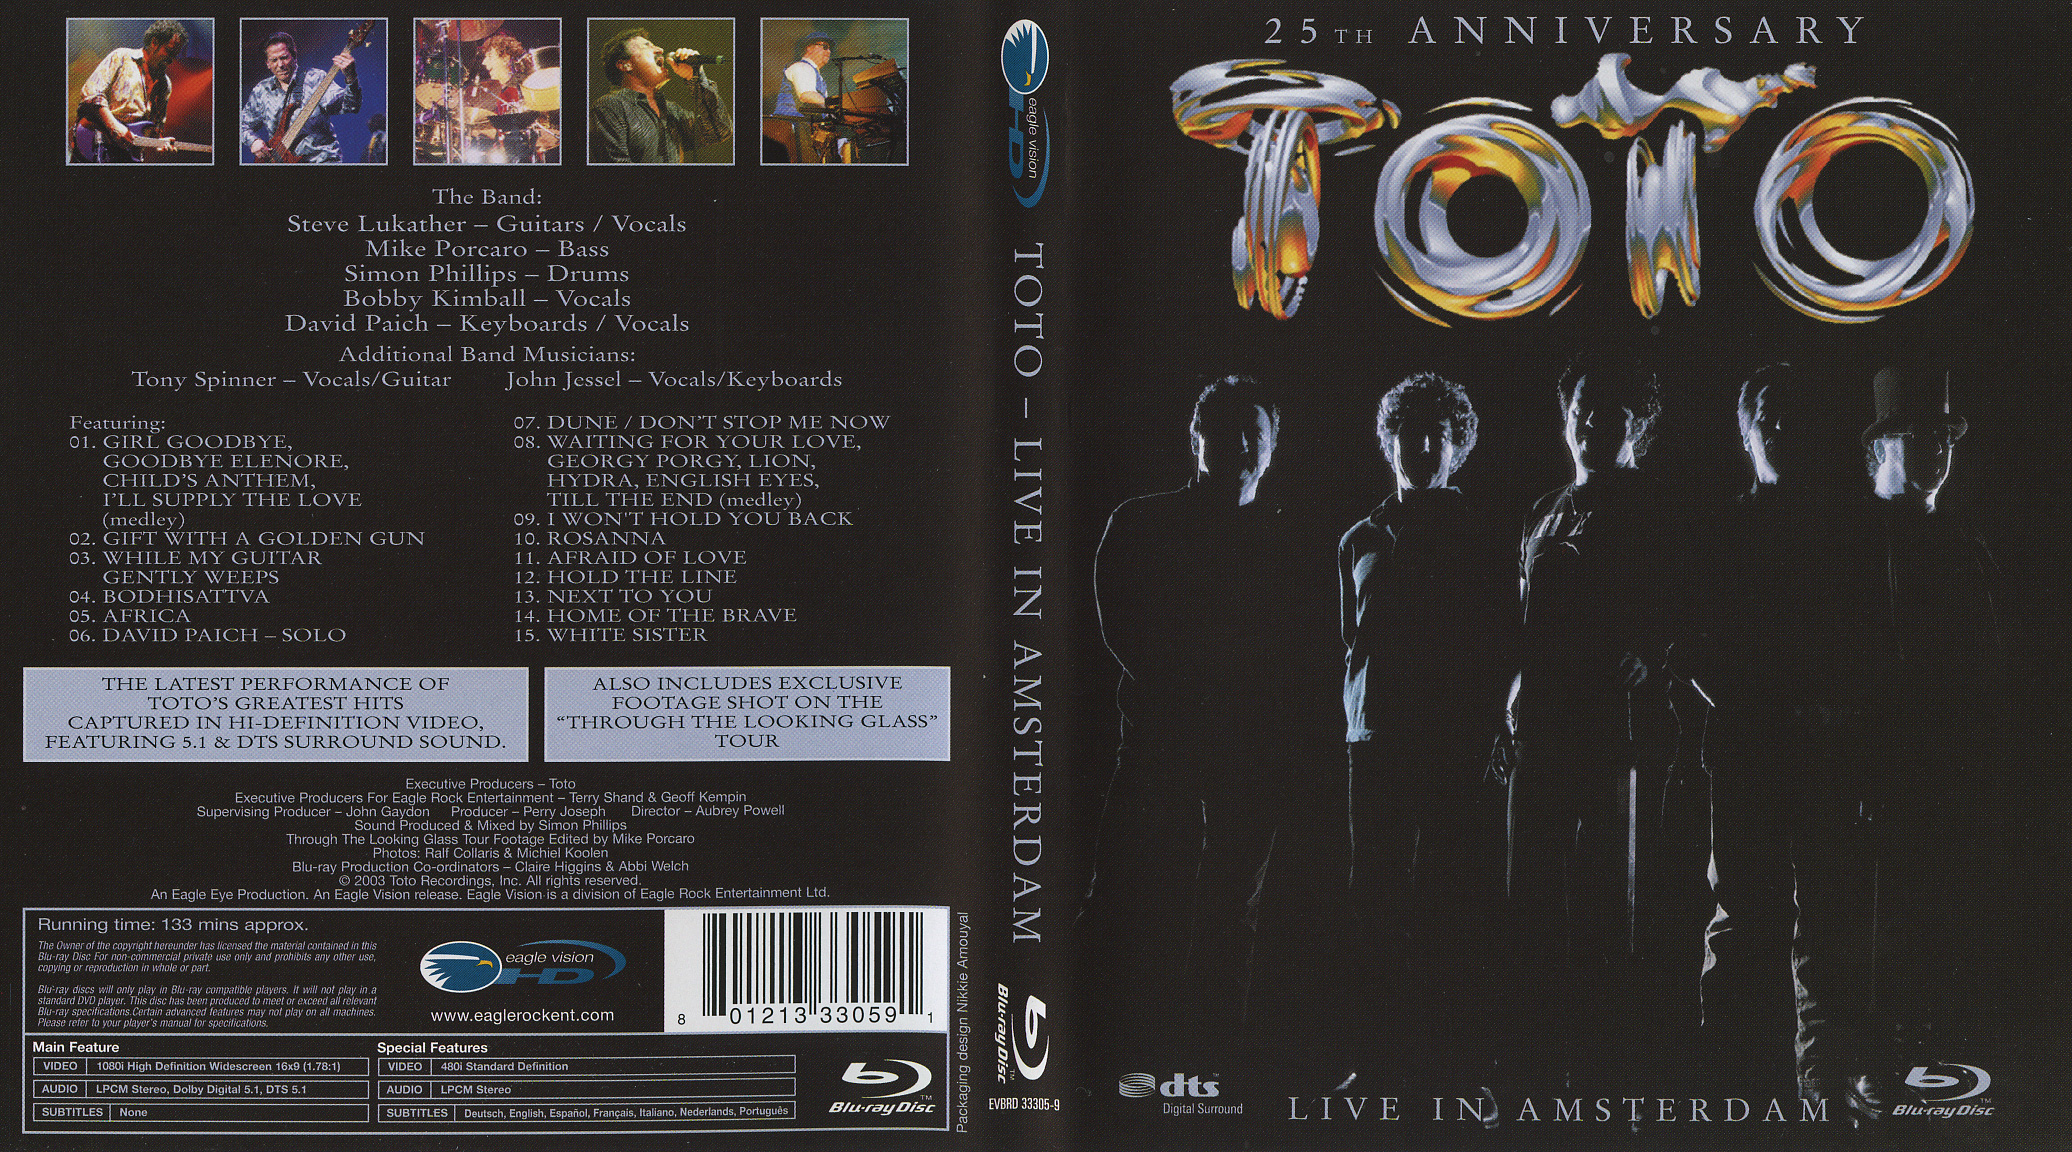 Toto: Live in Amsterdam (Blu-Ray) - CD Sniper Reference Collection ...